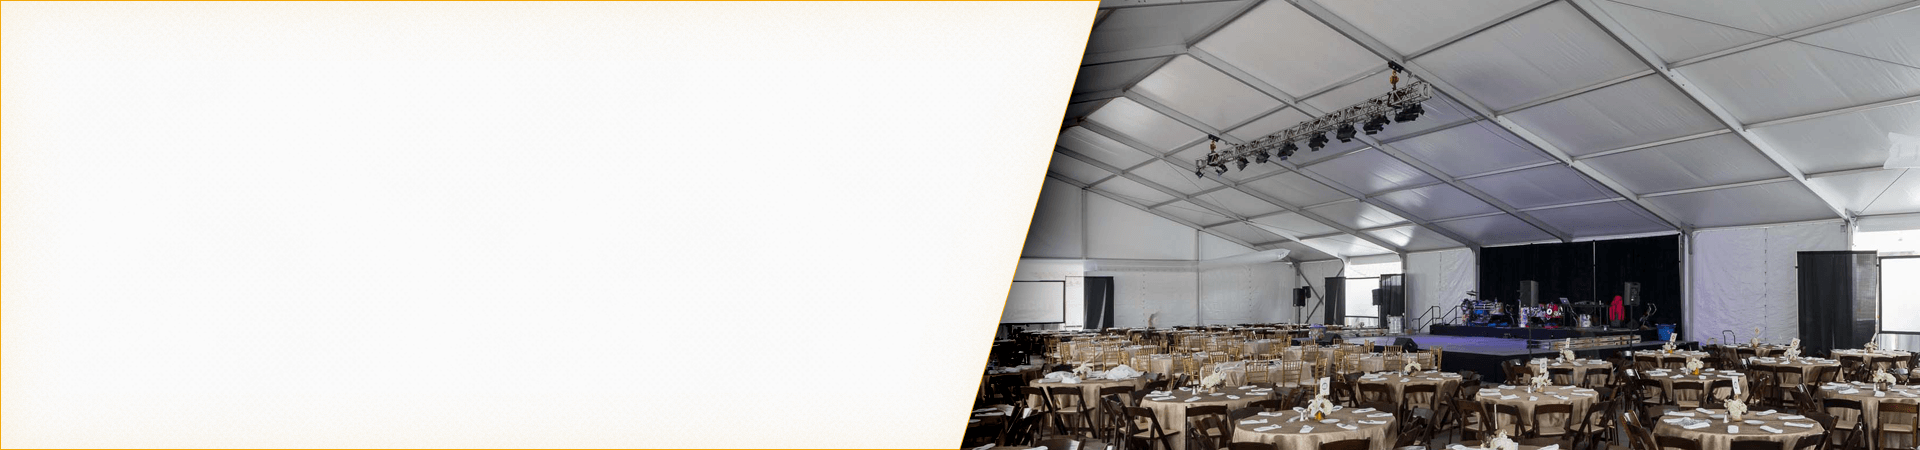 Losberger Clear Span Tent Rentals